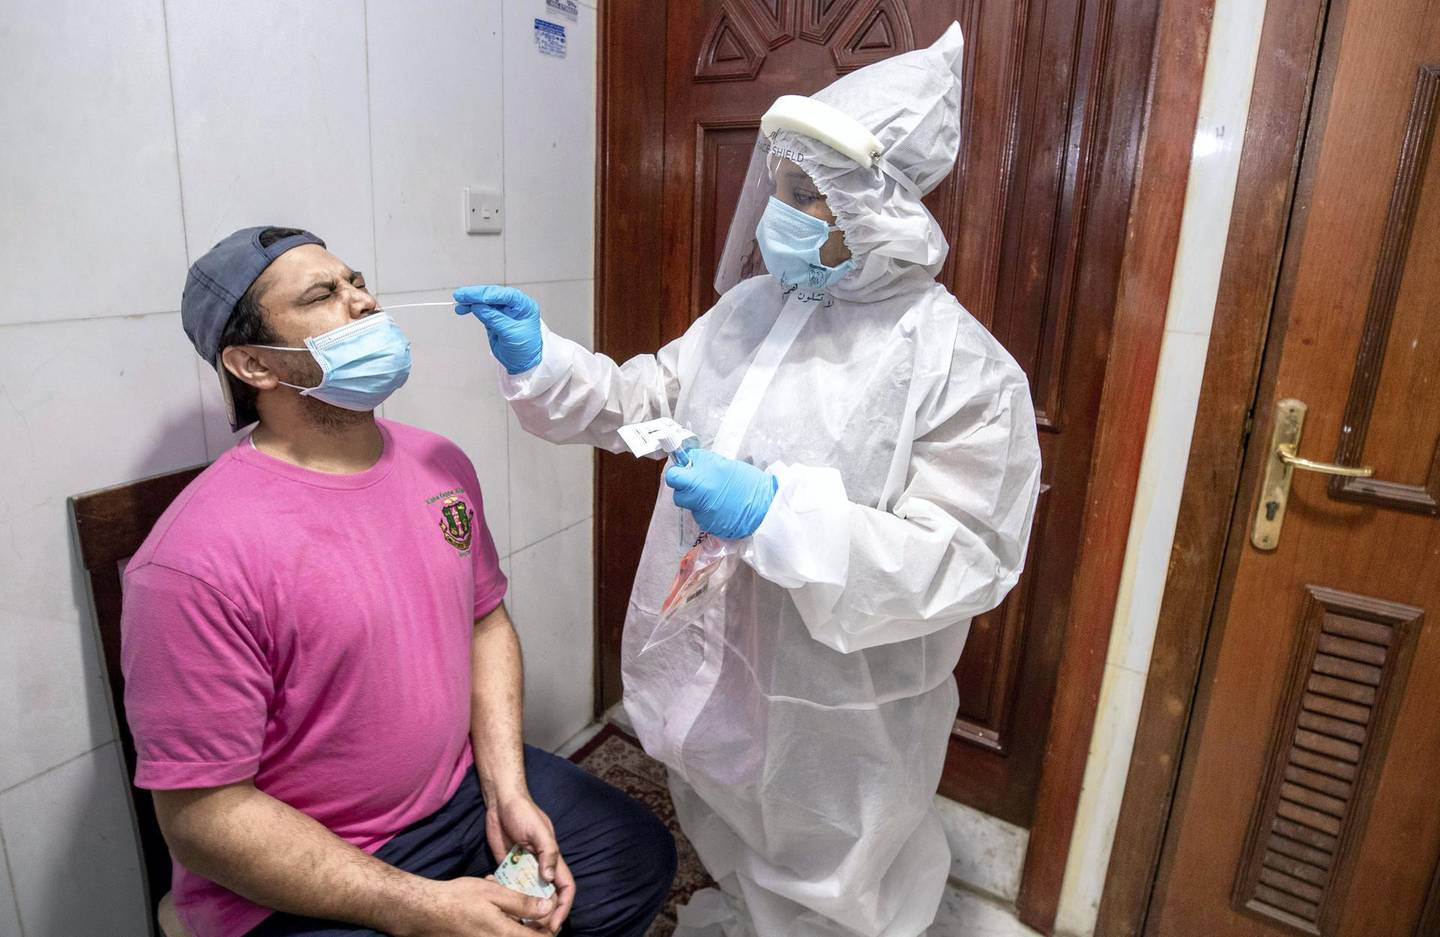 Abu Dhabi, United Arab Emirates, June 22, 2020.   STORY BRIEF: Police patrols knocking on doors offering free Covid-19 tests to residents in buildings in AD downtown, Al Bakra Street area.--  A resident gets tested.Victor Besa  / The NationalSection:  NAReporter:  Haneen Dajani